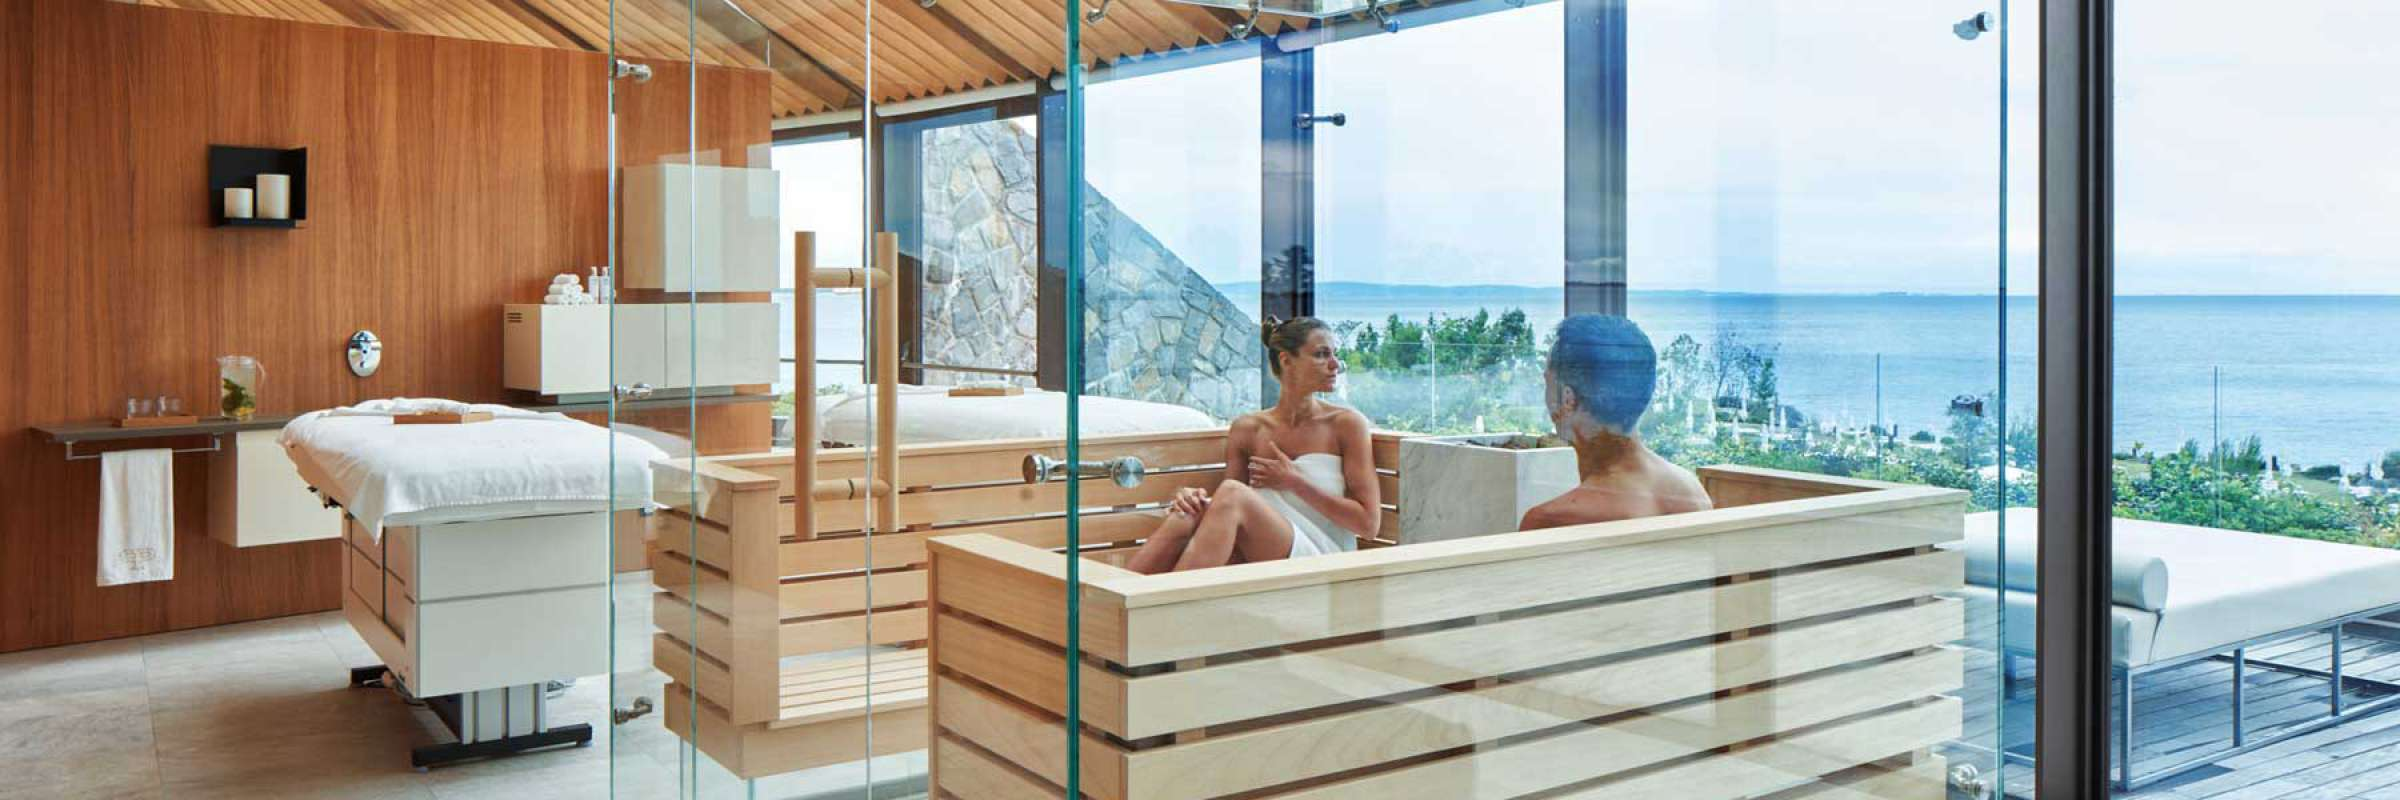 Portopiccolo Spa by Bakel Sauna